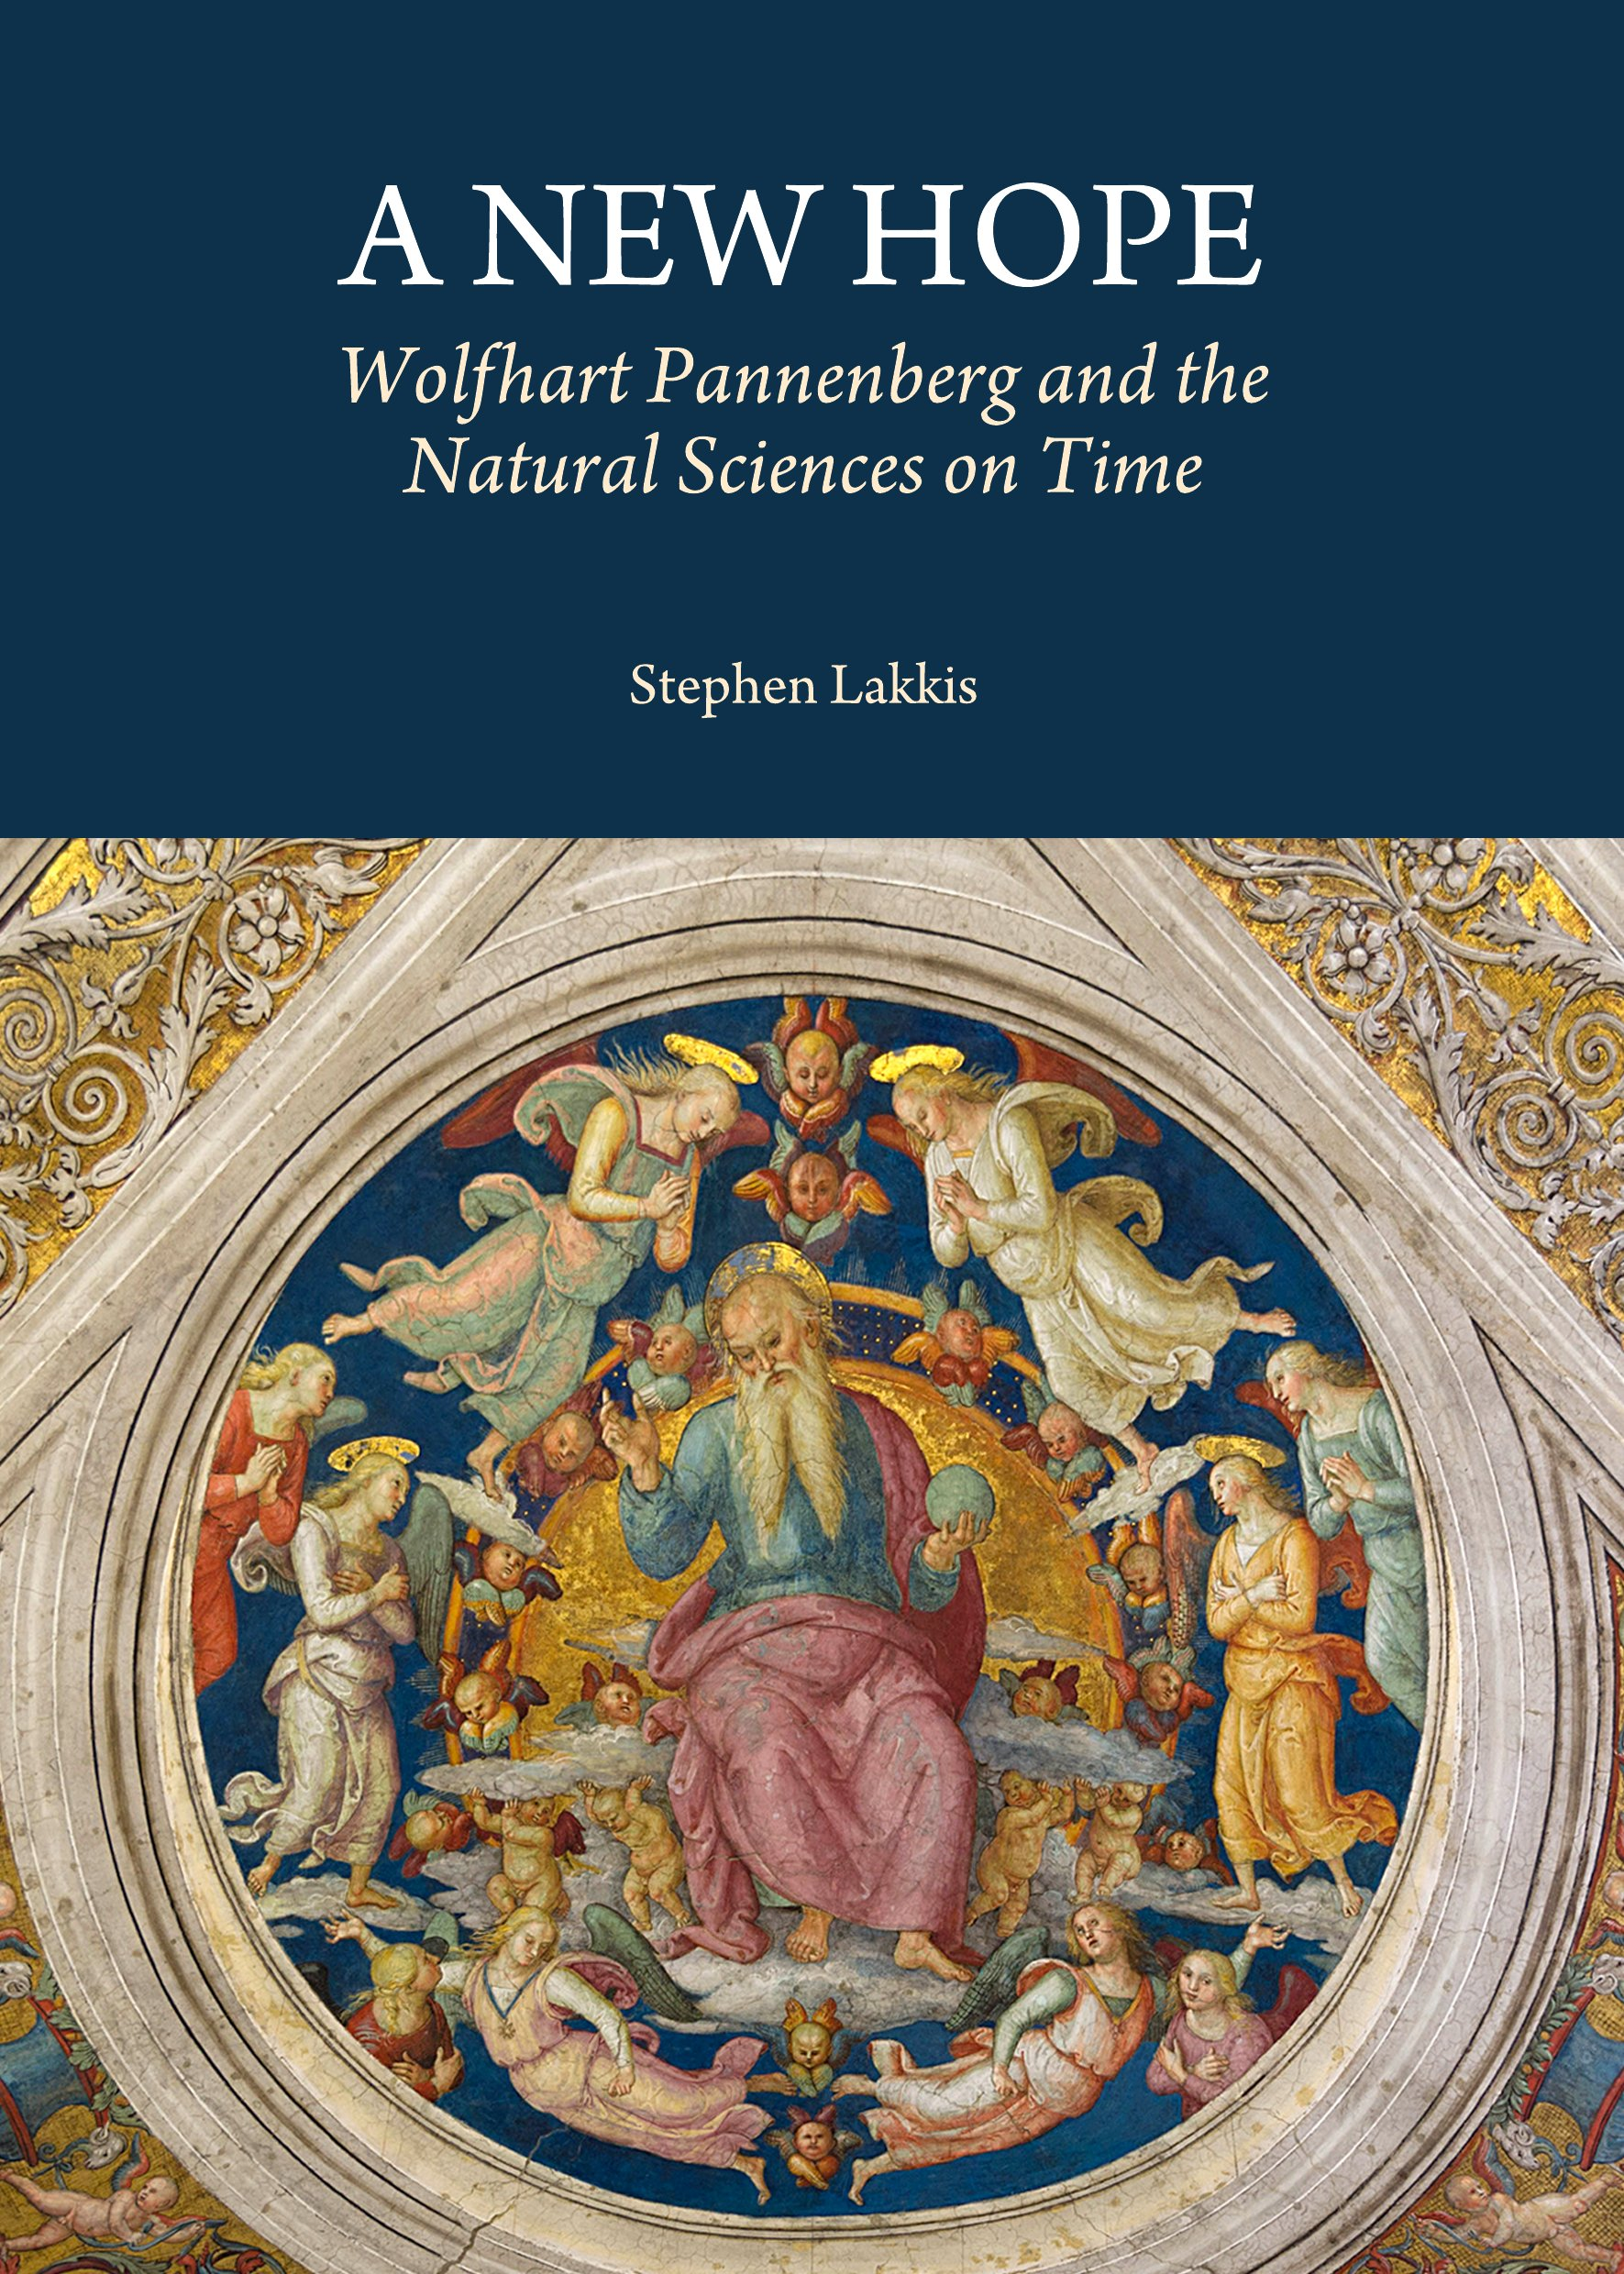 A New Hope: Wolfhart Pannenberg and the Natural Sciences on Time